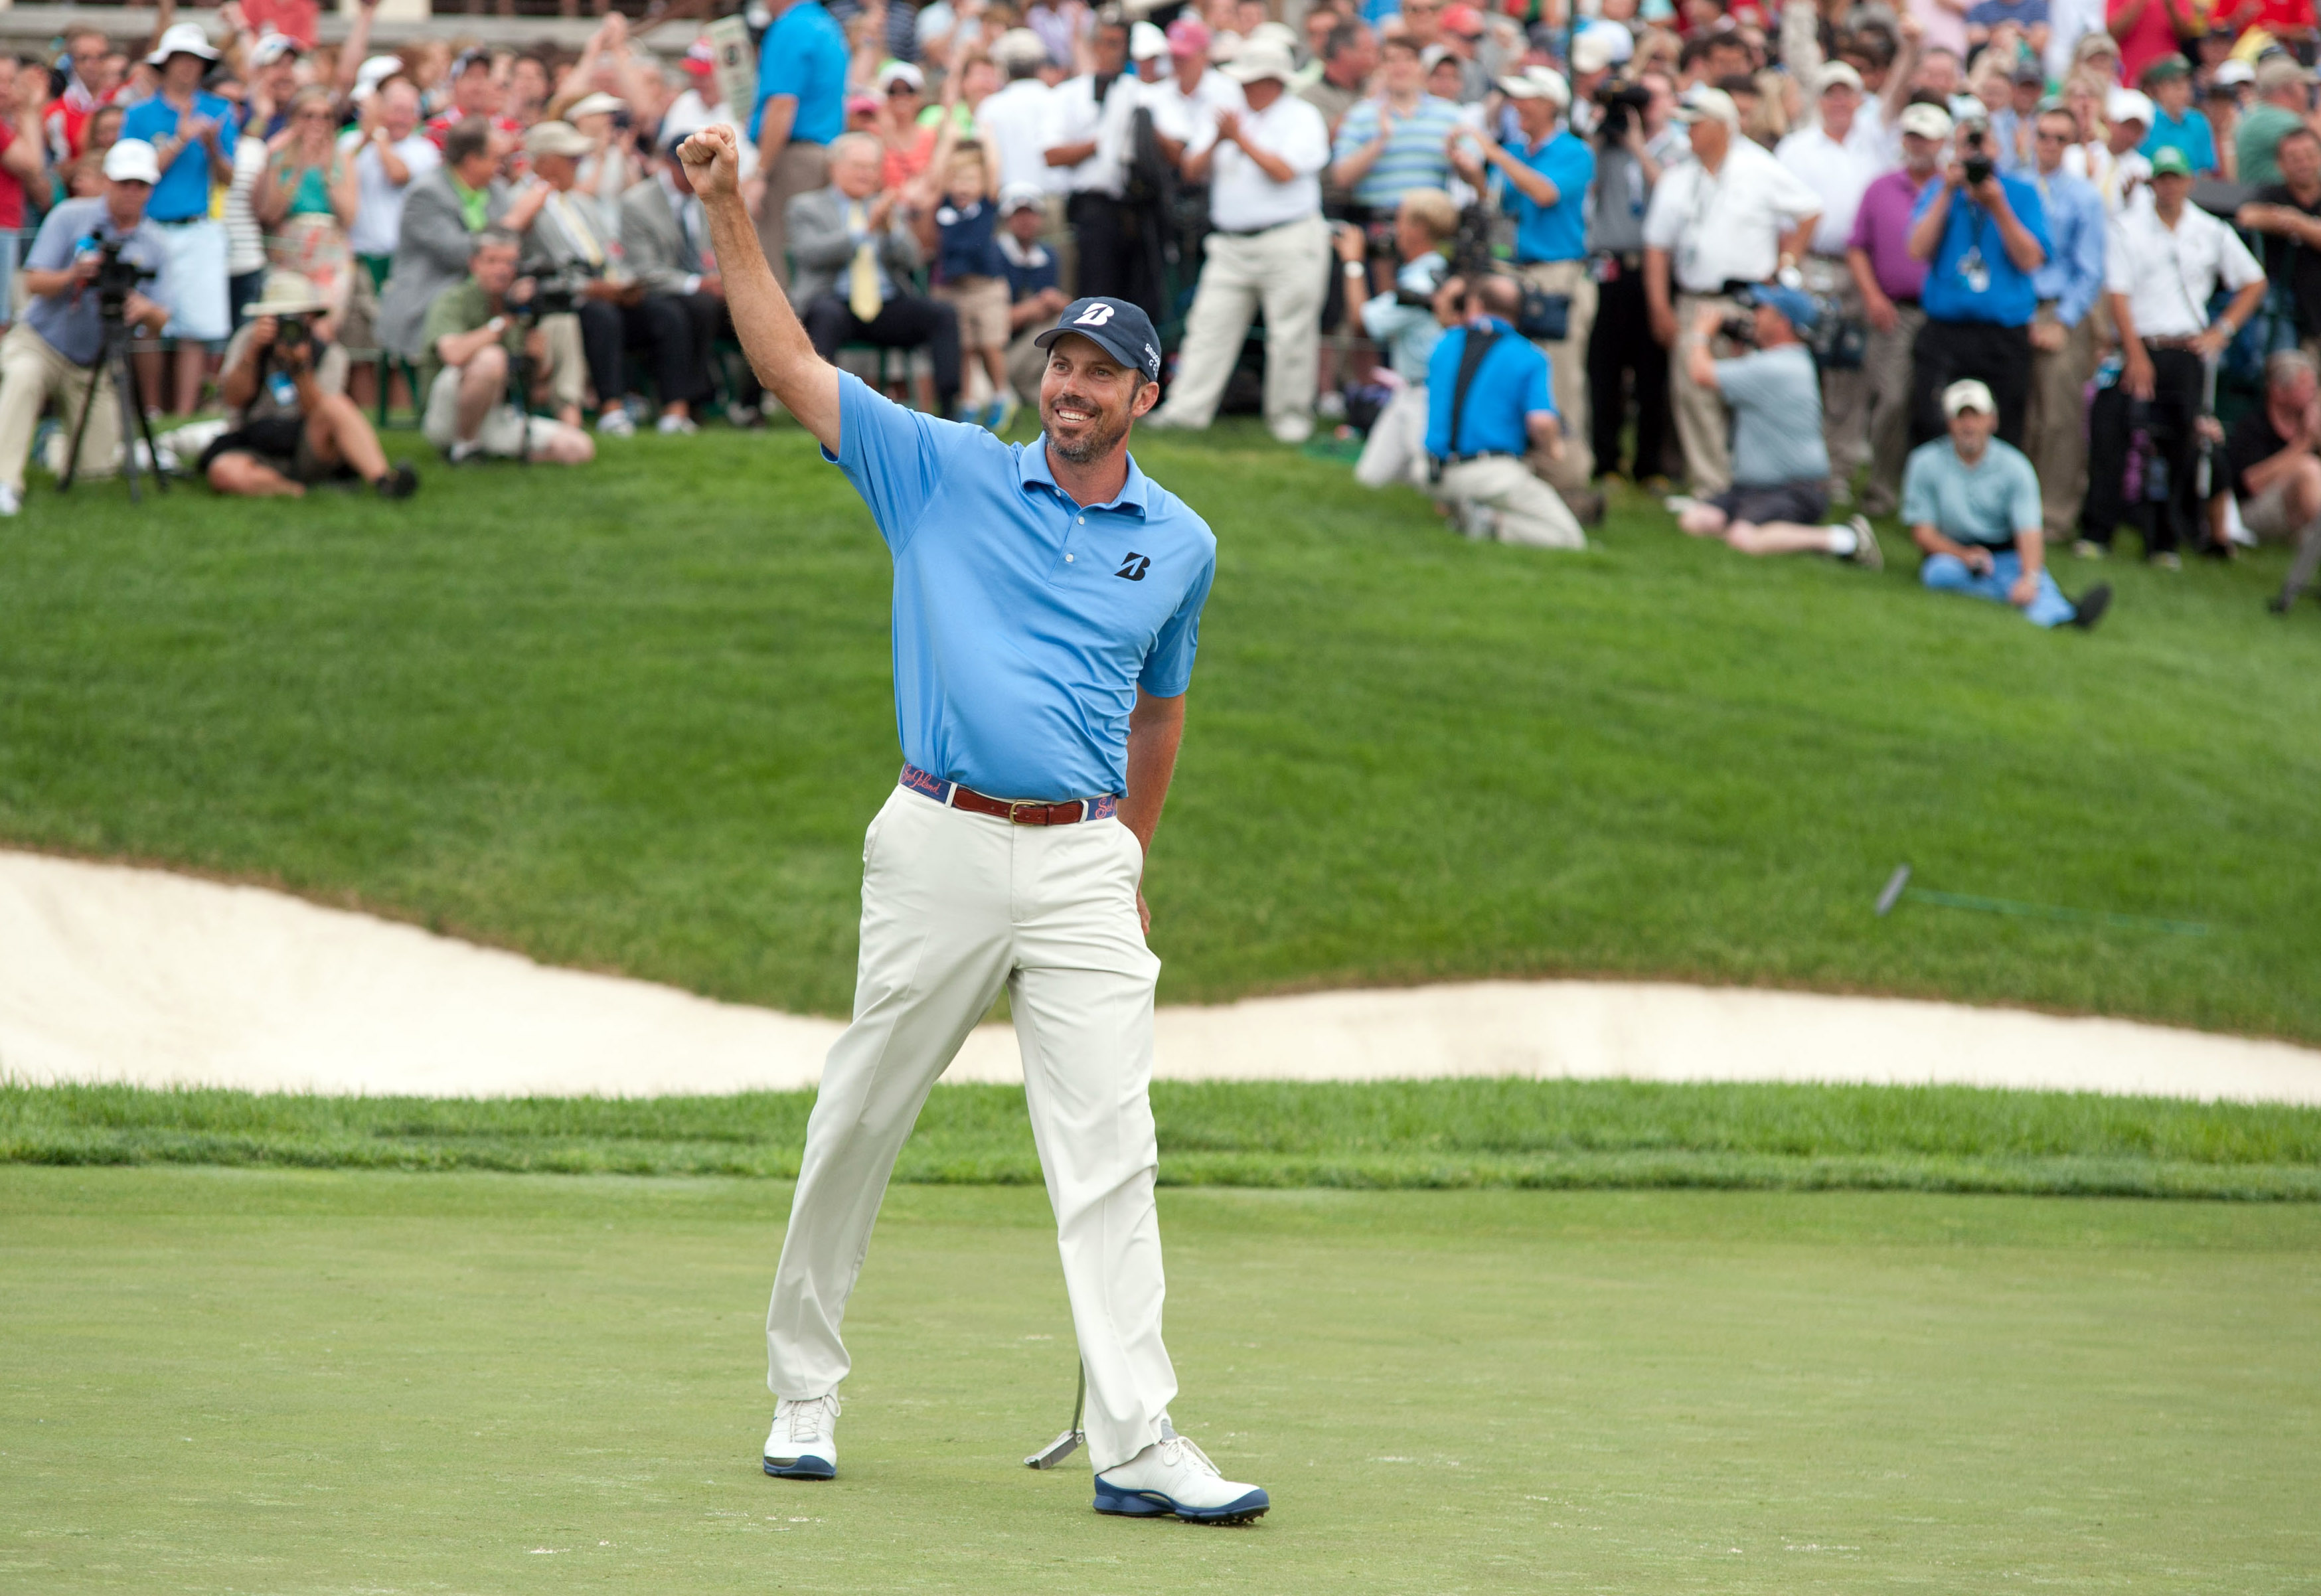 Matt Kuchar celebrates after winning the Memorial Tournament. (USA Today)